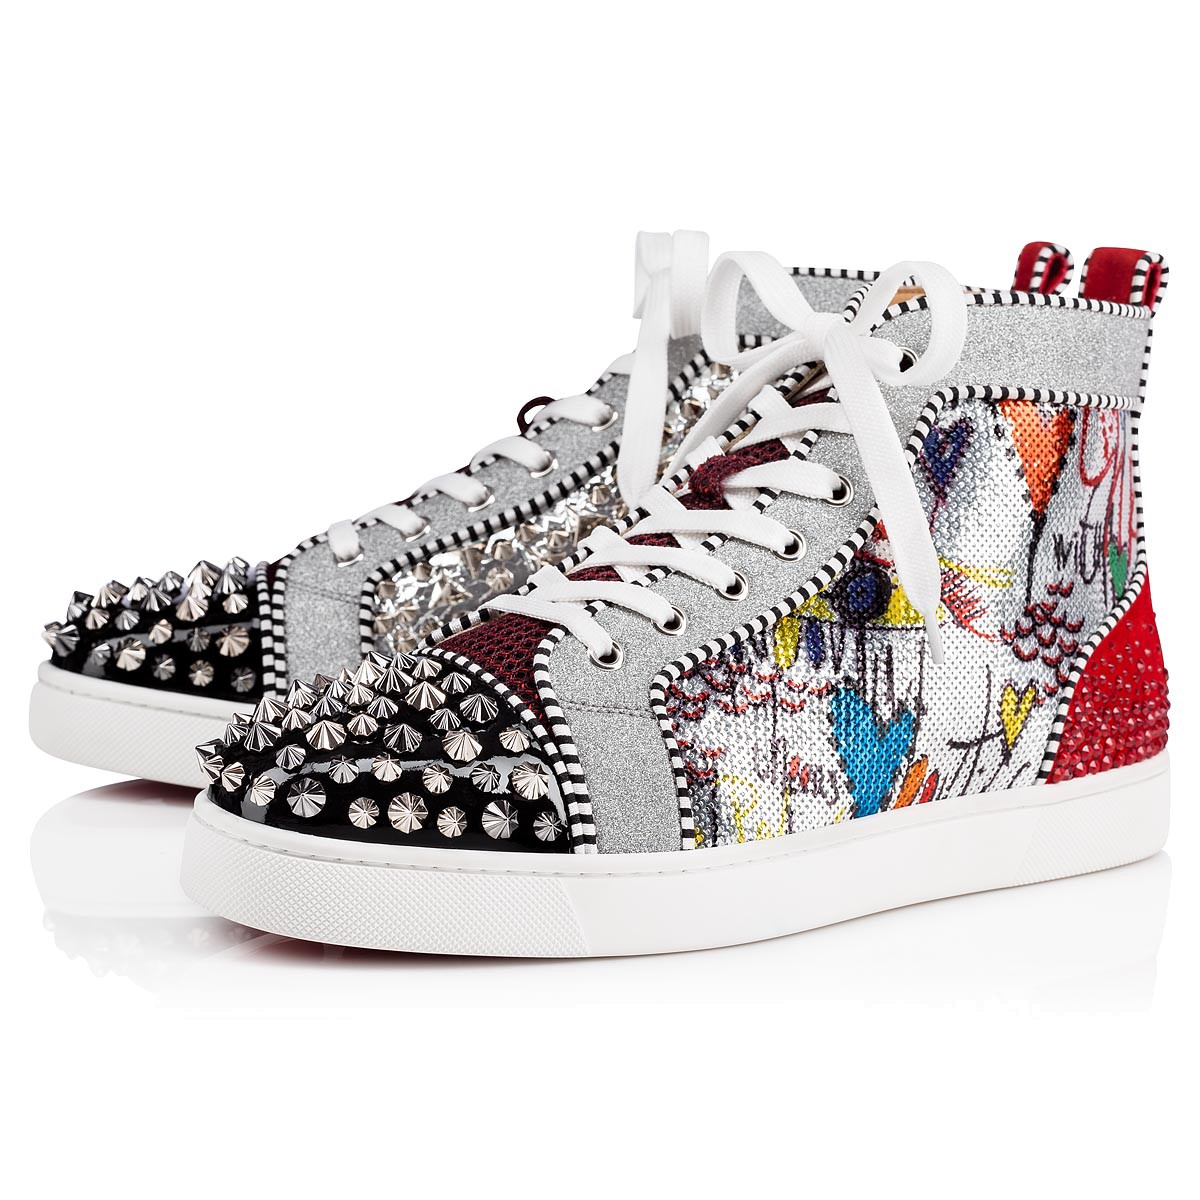 b1f23c8804c red bottom shoes for men - Christian Louboutin No Limit F18 High Top Silver  Spikes Men Shoes - red bottoms for men - red bottom sneakers US  280- ...